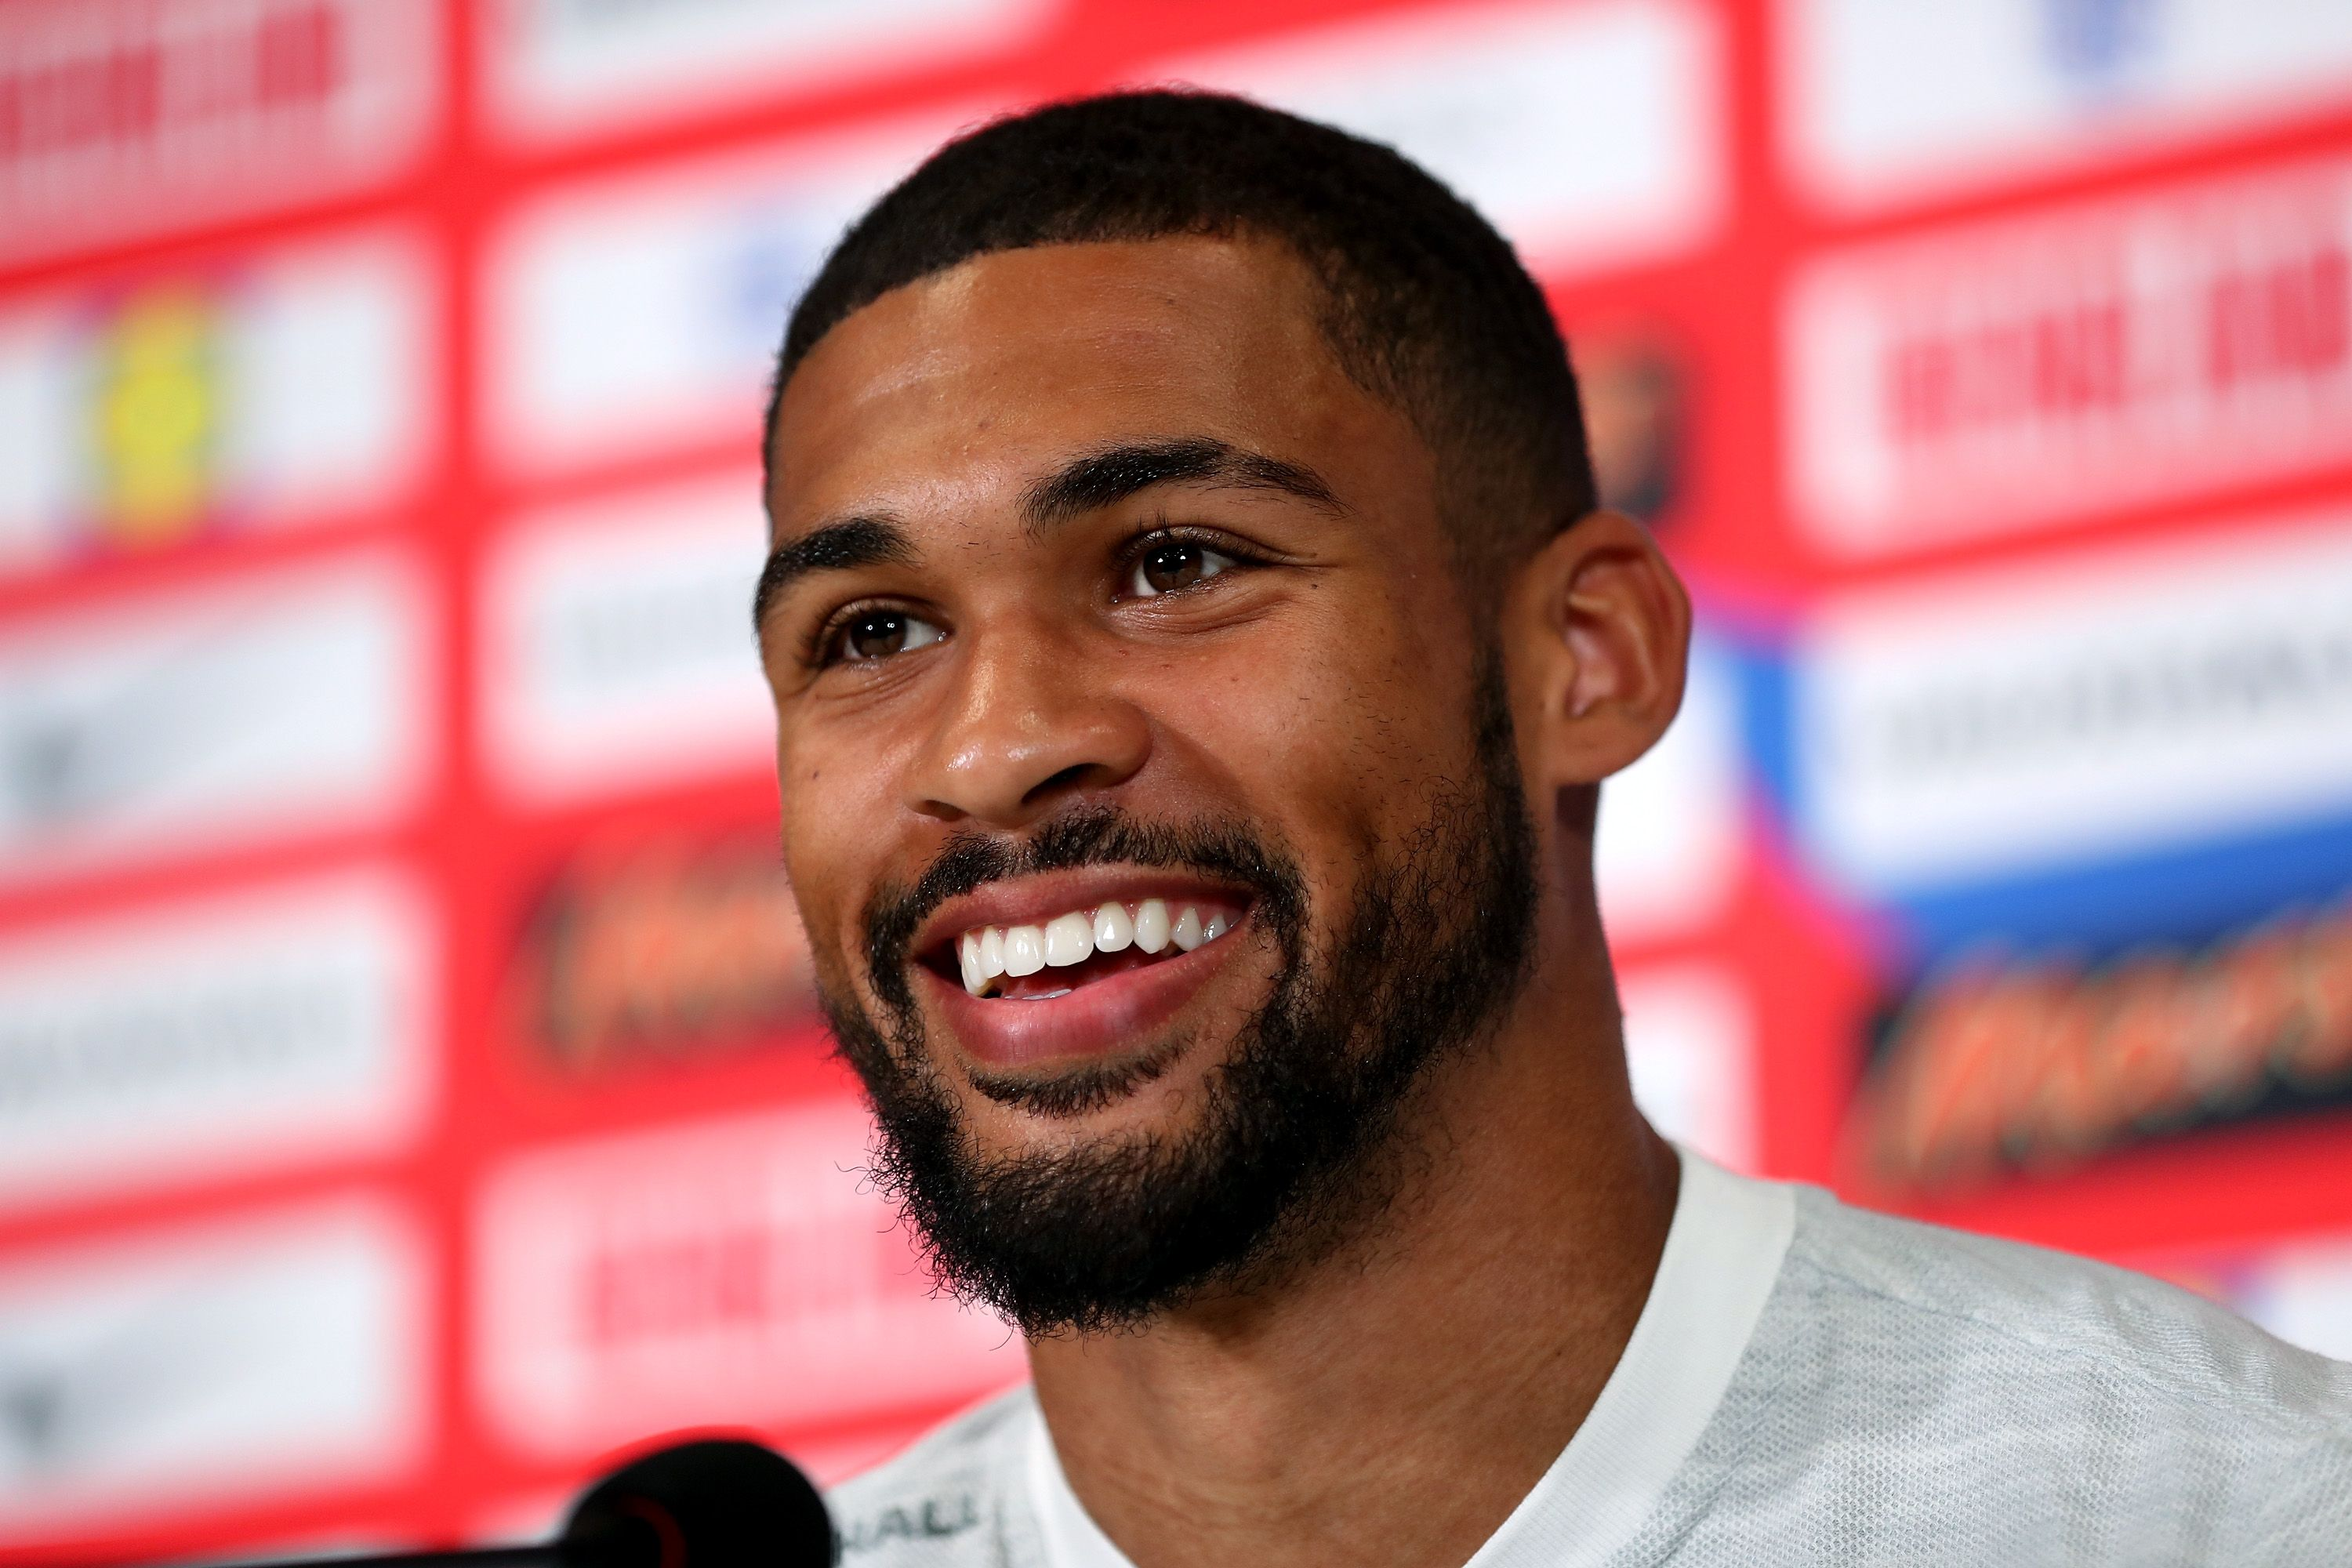 Ruben Loftus-Cheek Haircut